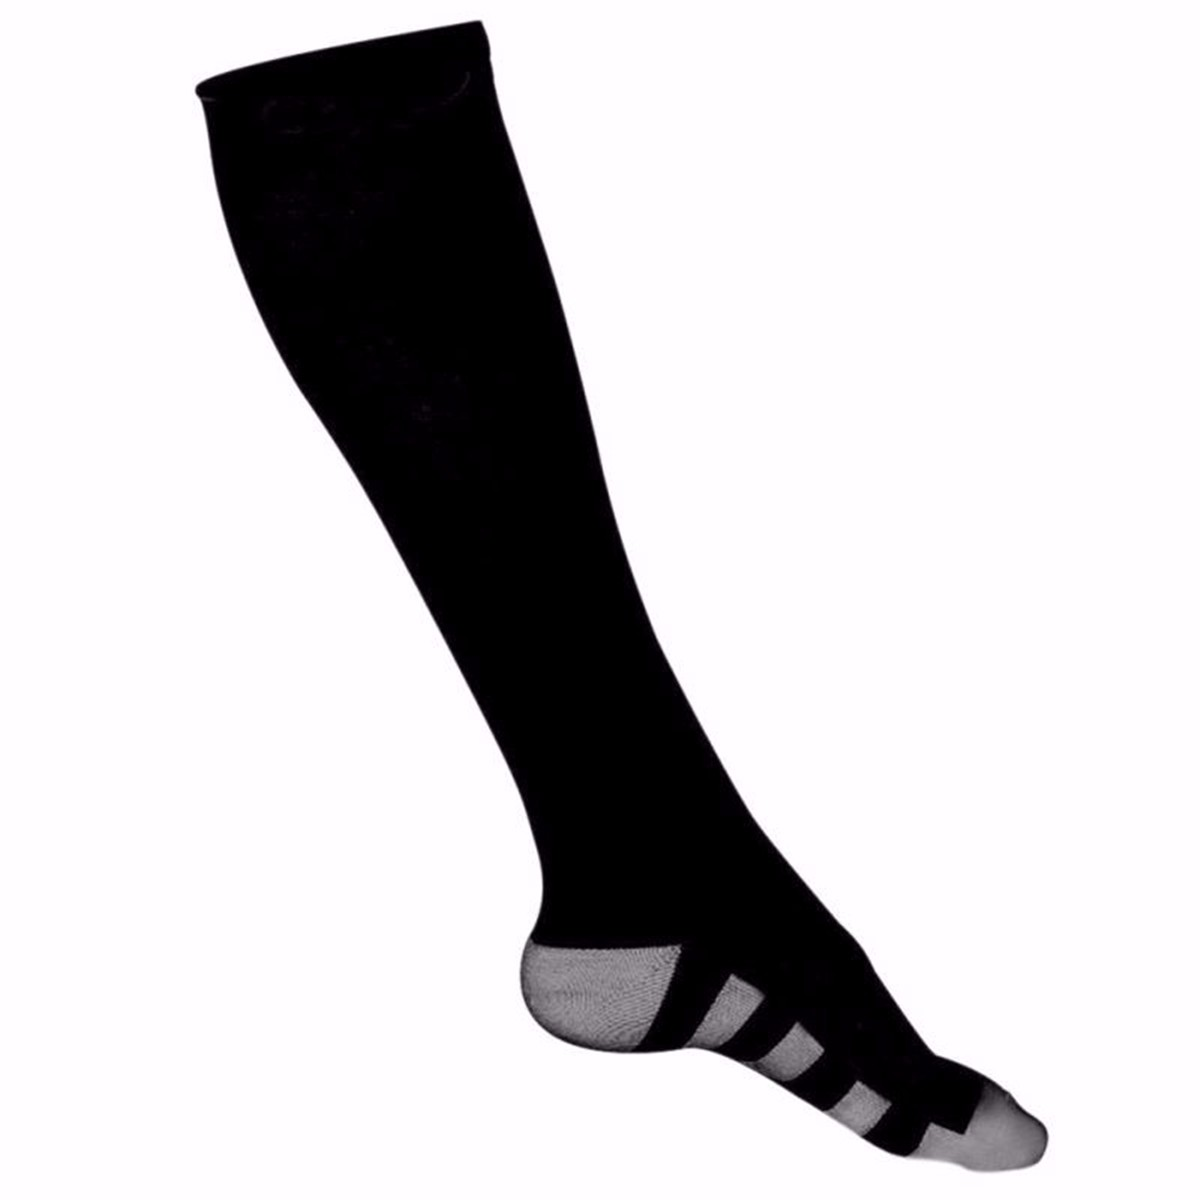 1 Pair Nylon Stretch Compression High Socks Leg Support Sport Calf Swelling Relief Anti Fatigue